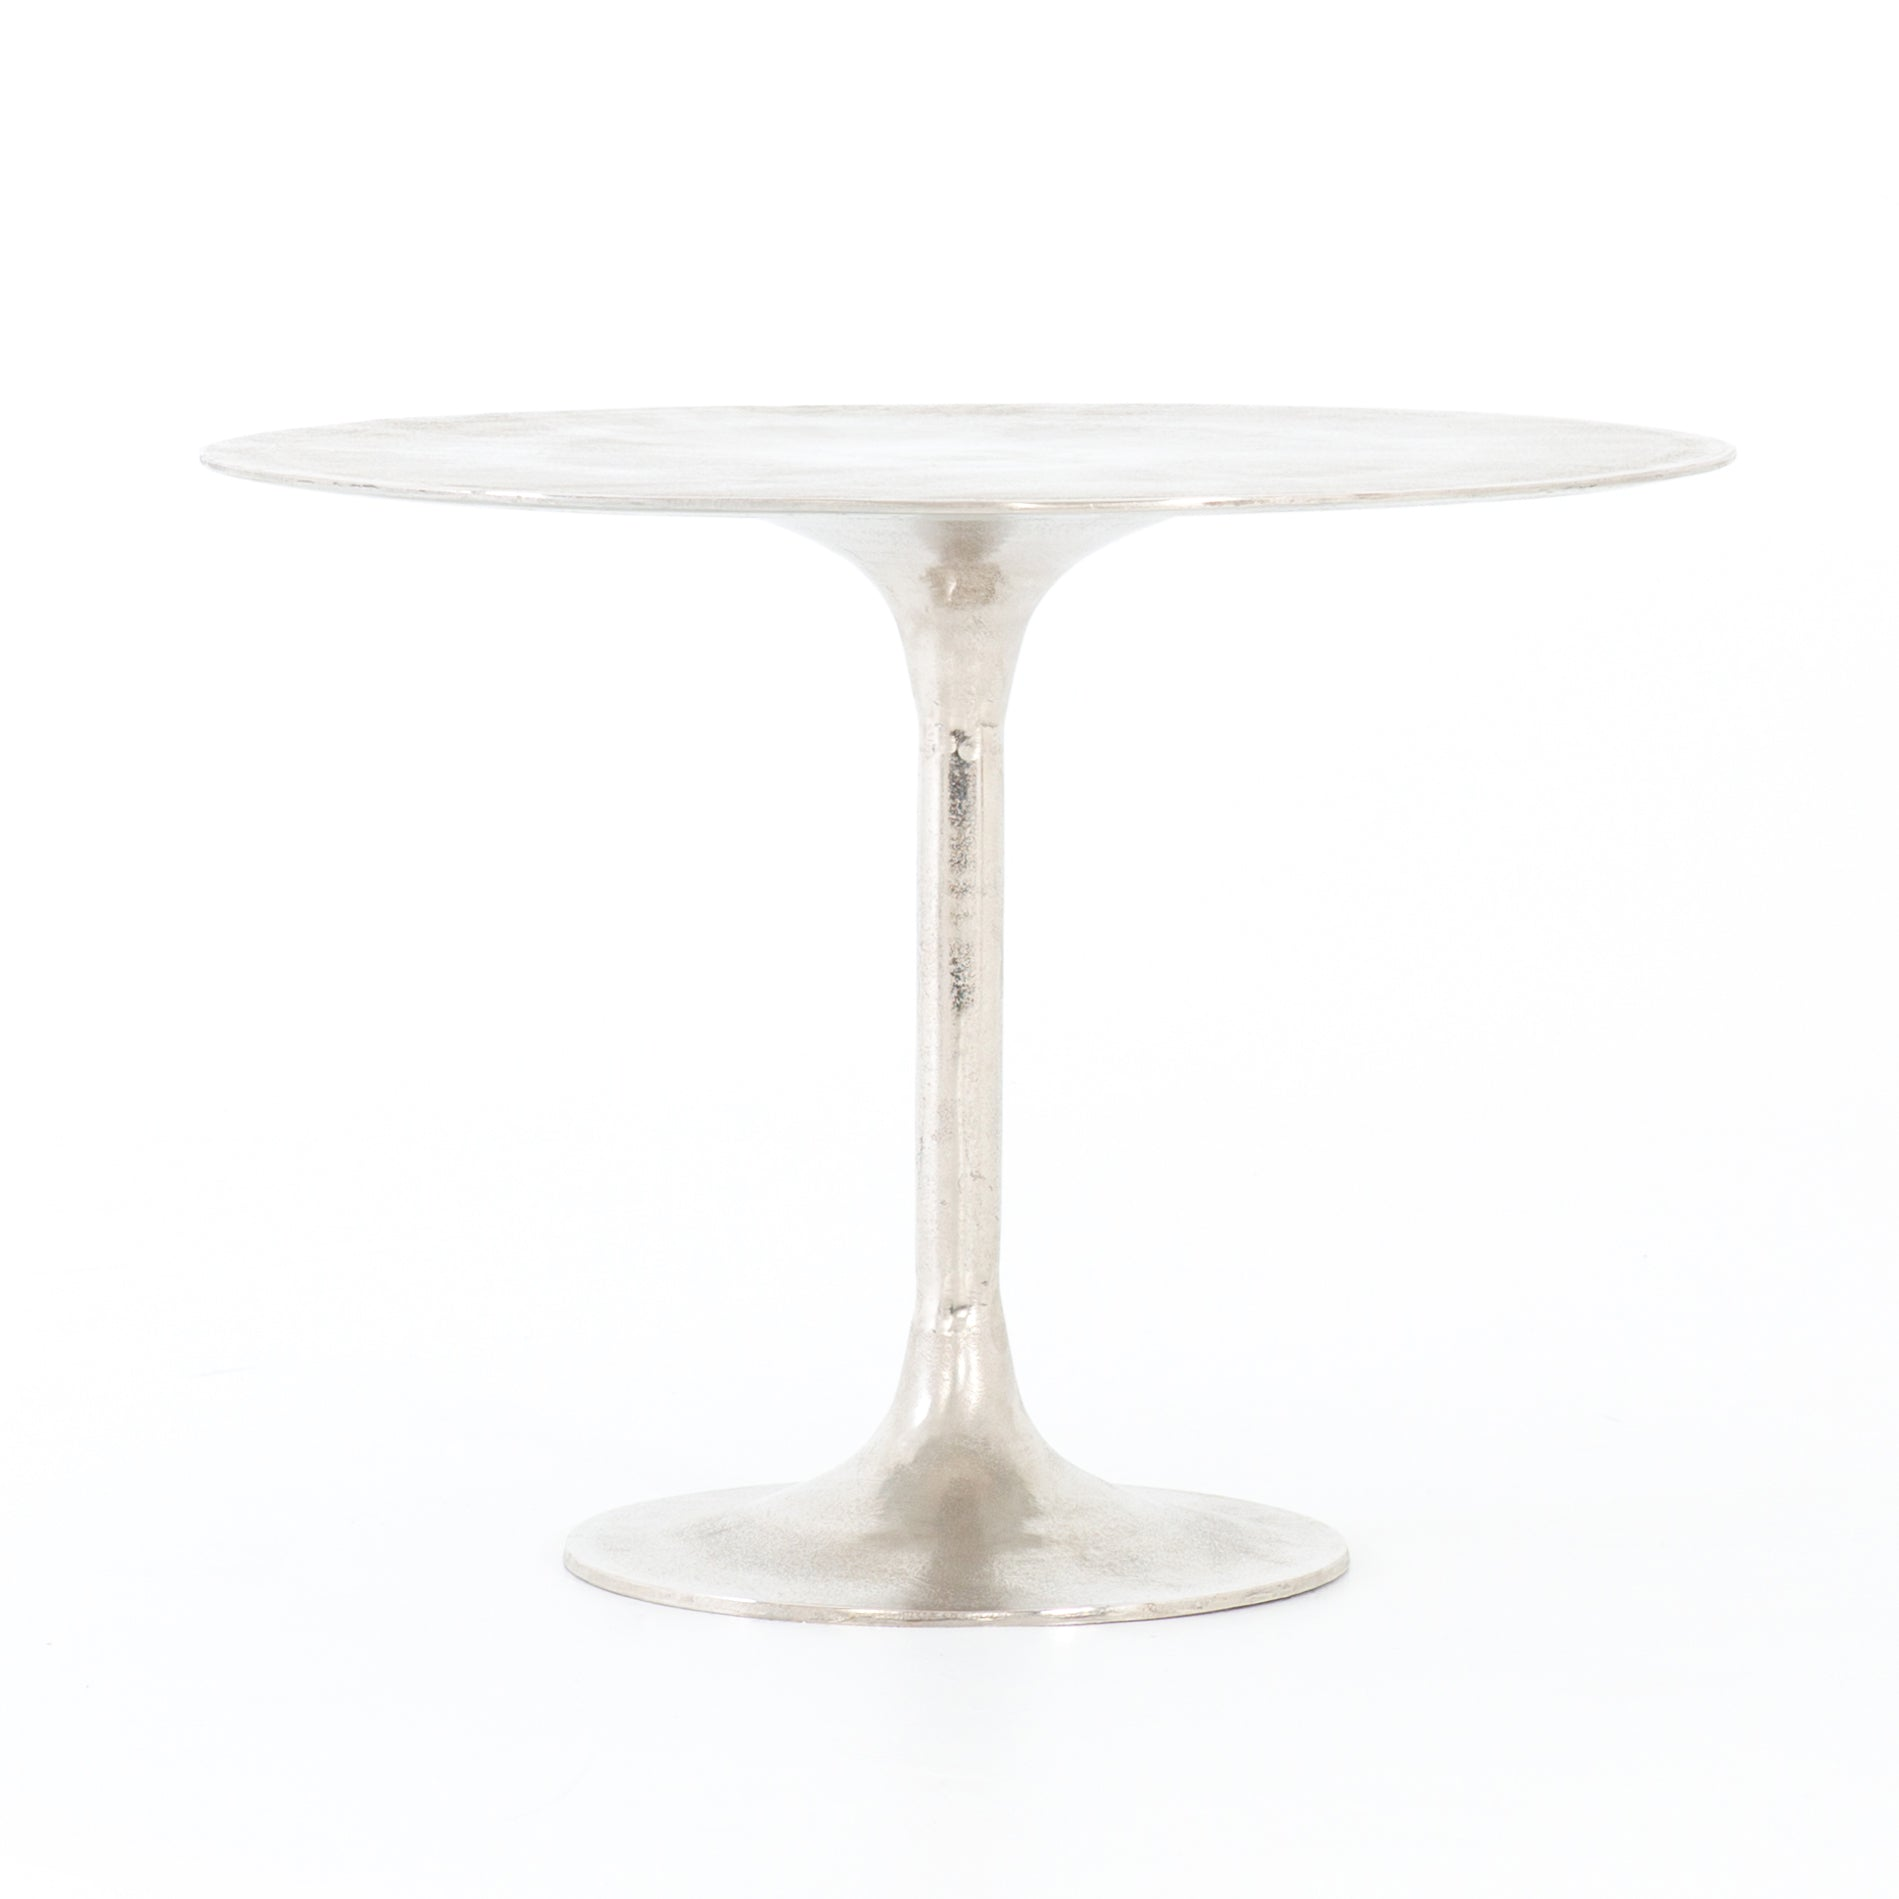 Simeno Cast Aluminum Bistro Table - Raw Nickel